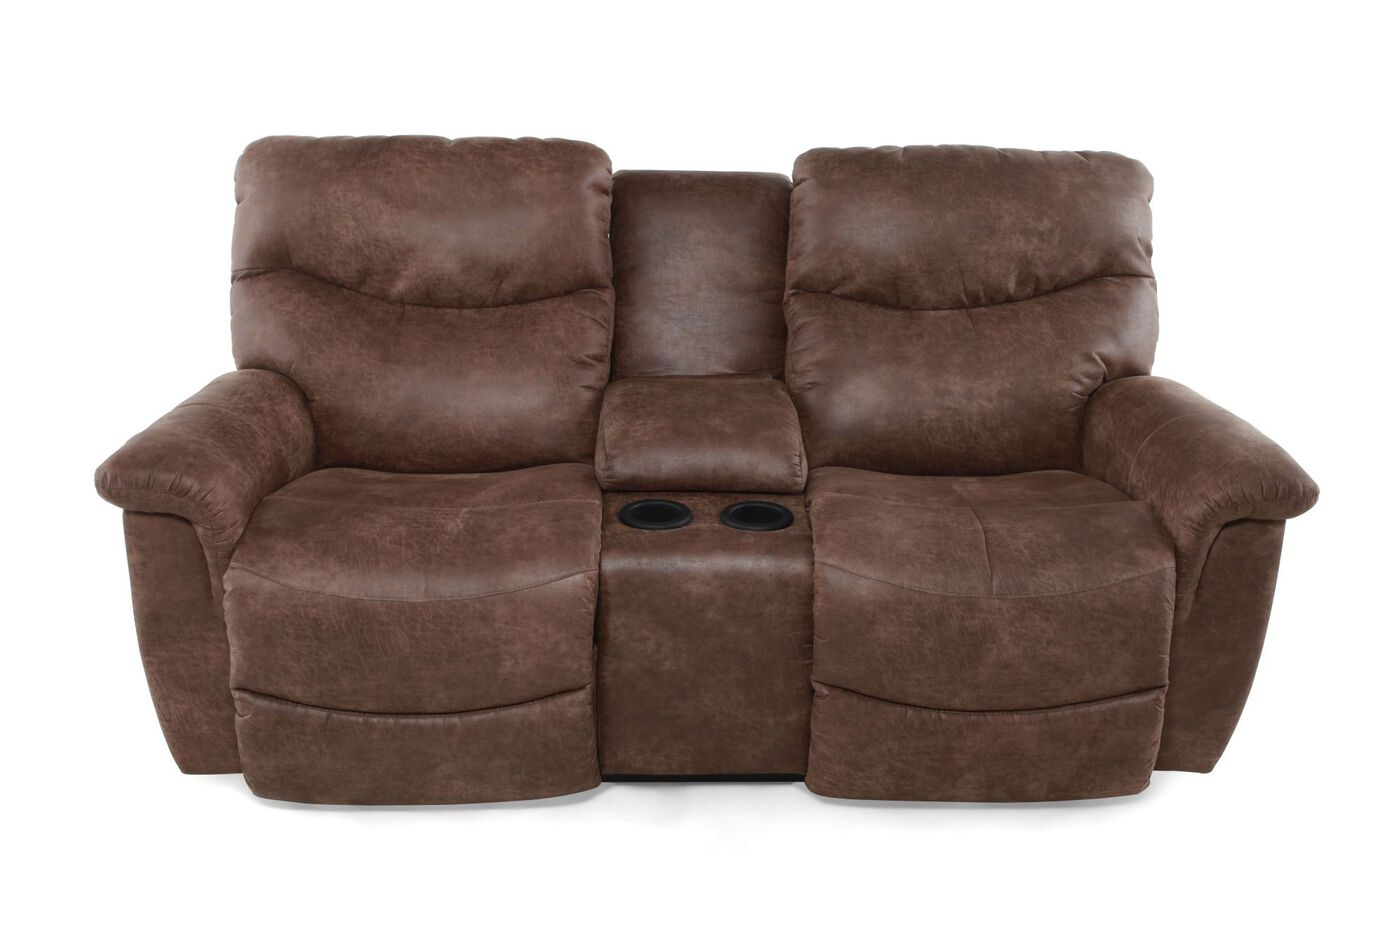 Aflair is a furniture store in London, Putney, offering a stylish contemporary collection of sofas, furniture, lighting and accessories.